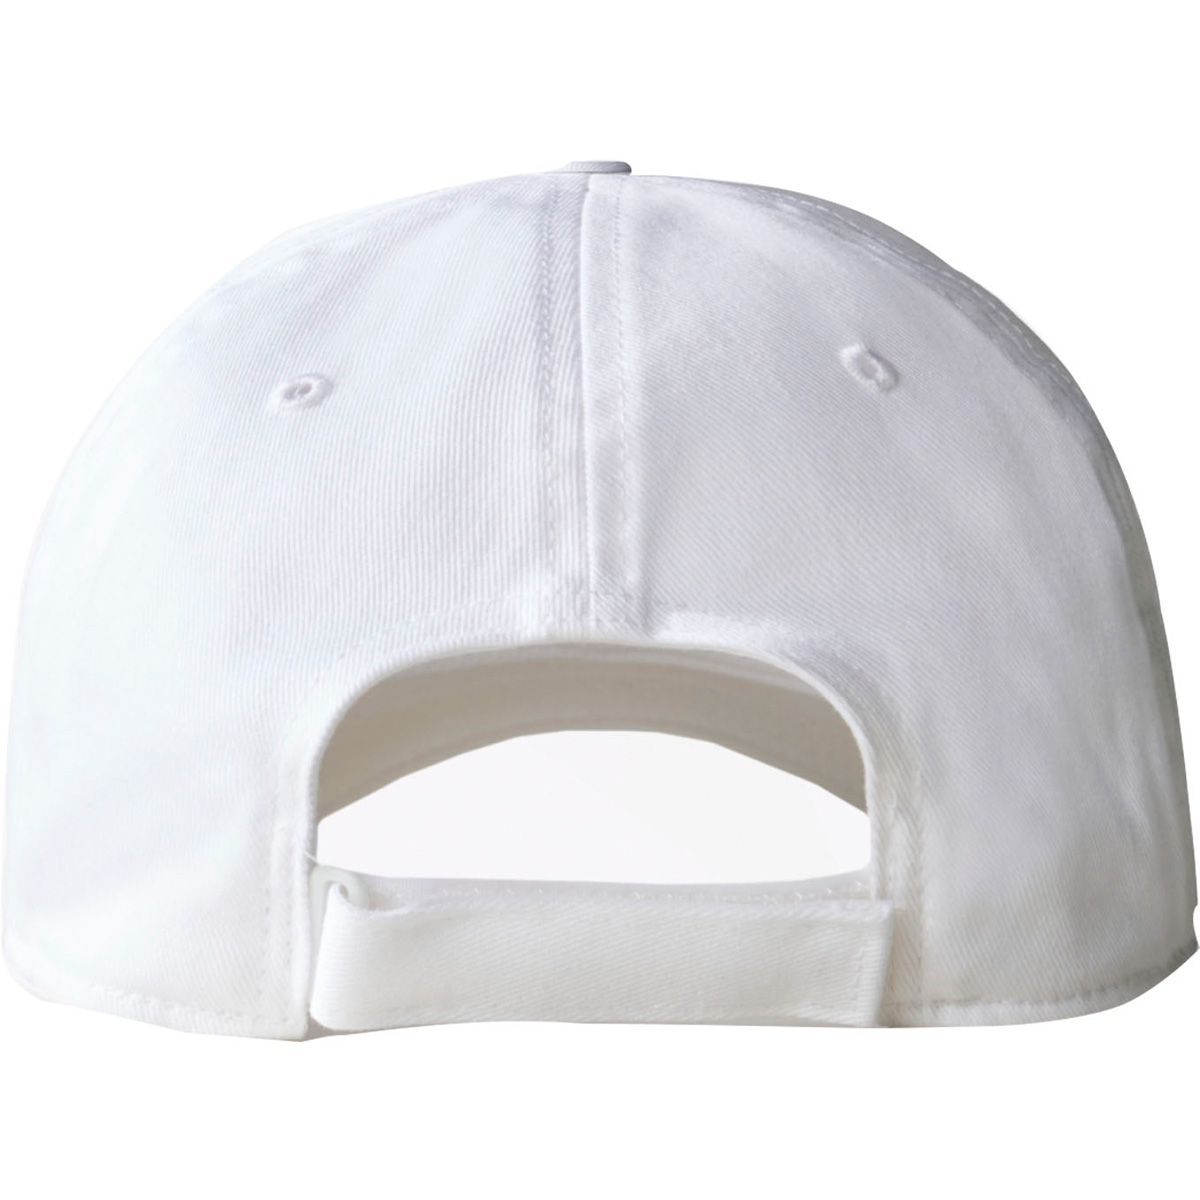 adafd398e21f0 Nike Visor Hats Target - Parchment N Lead